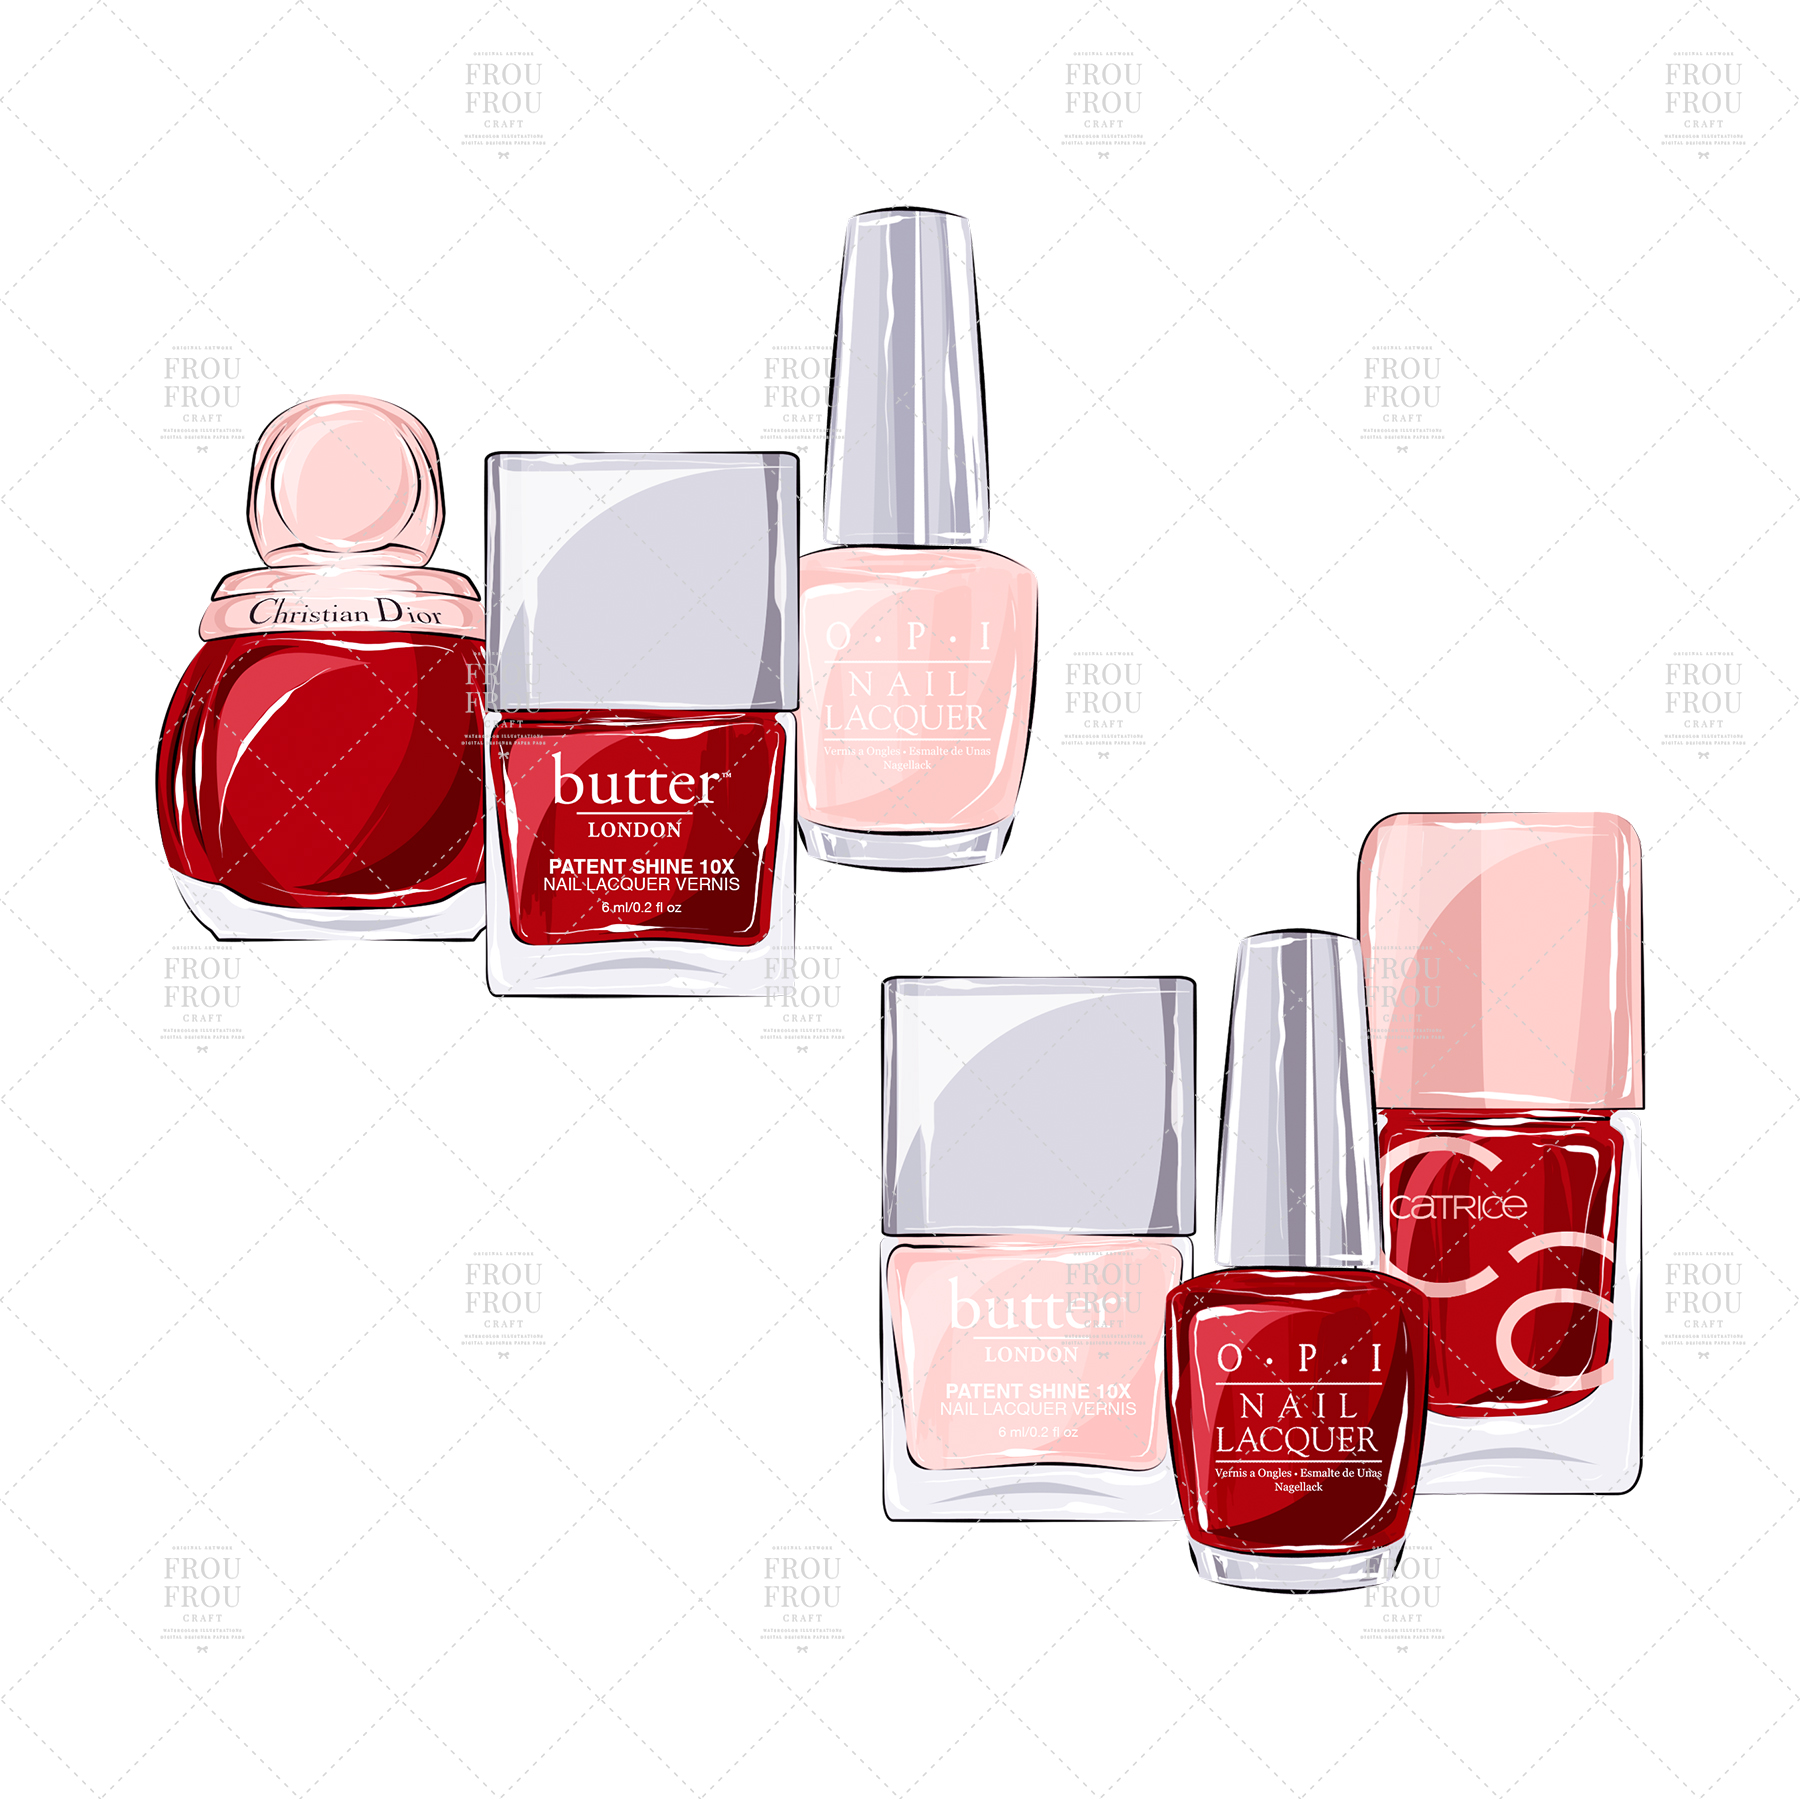 Manicure Cosmetic Nail Polish Beauty Clip Art example image 8